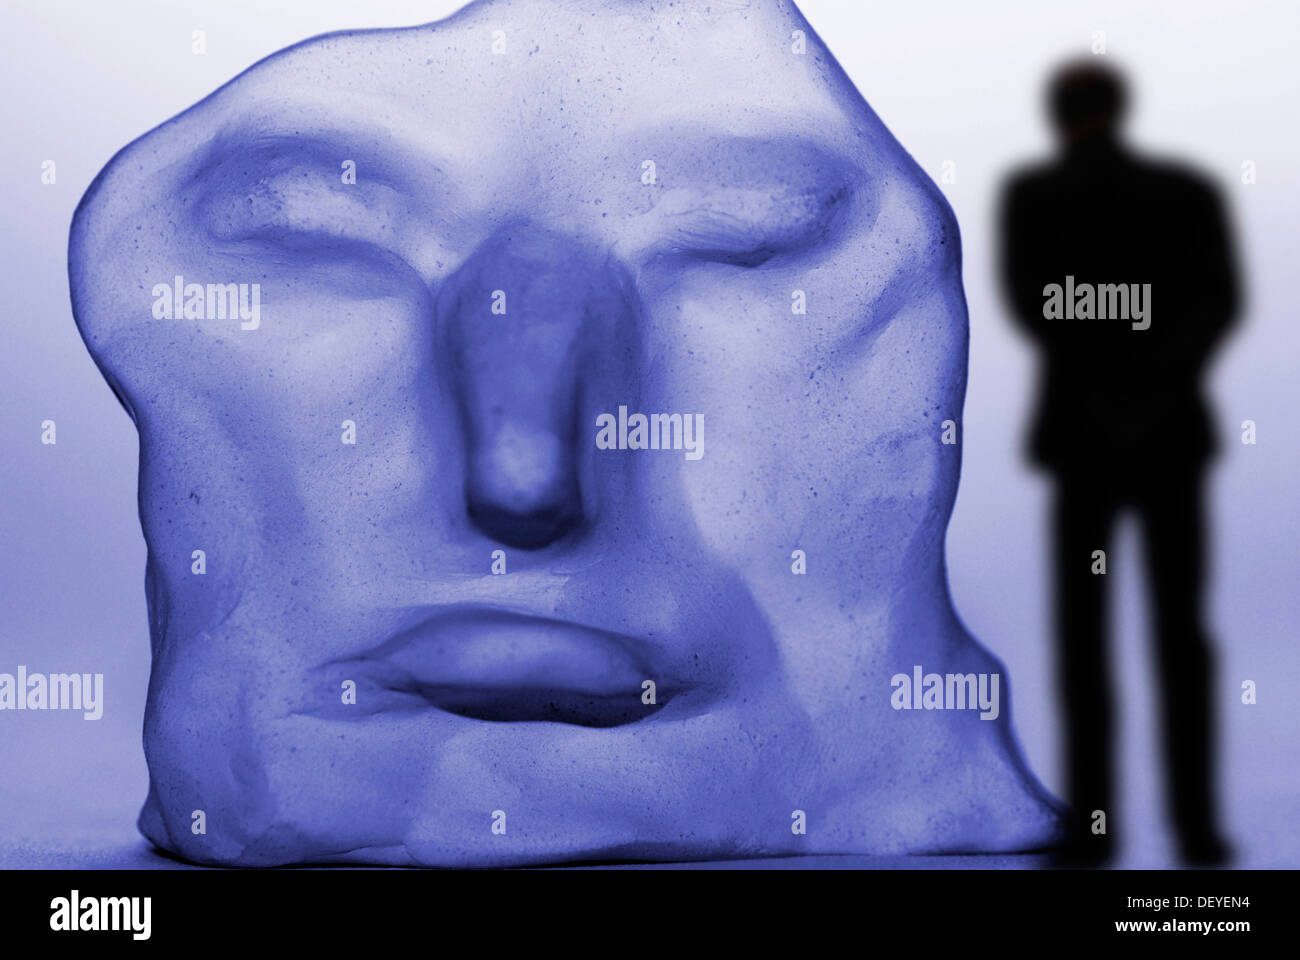 Lonely man in front of a distorted face, depression - Stock Image